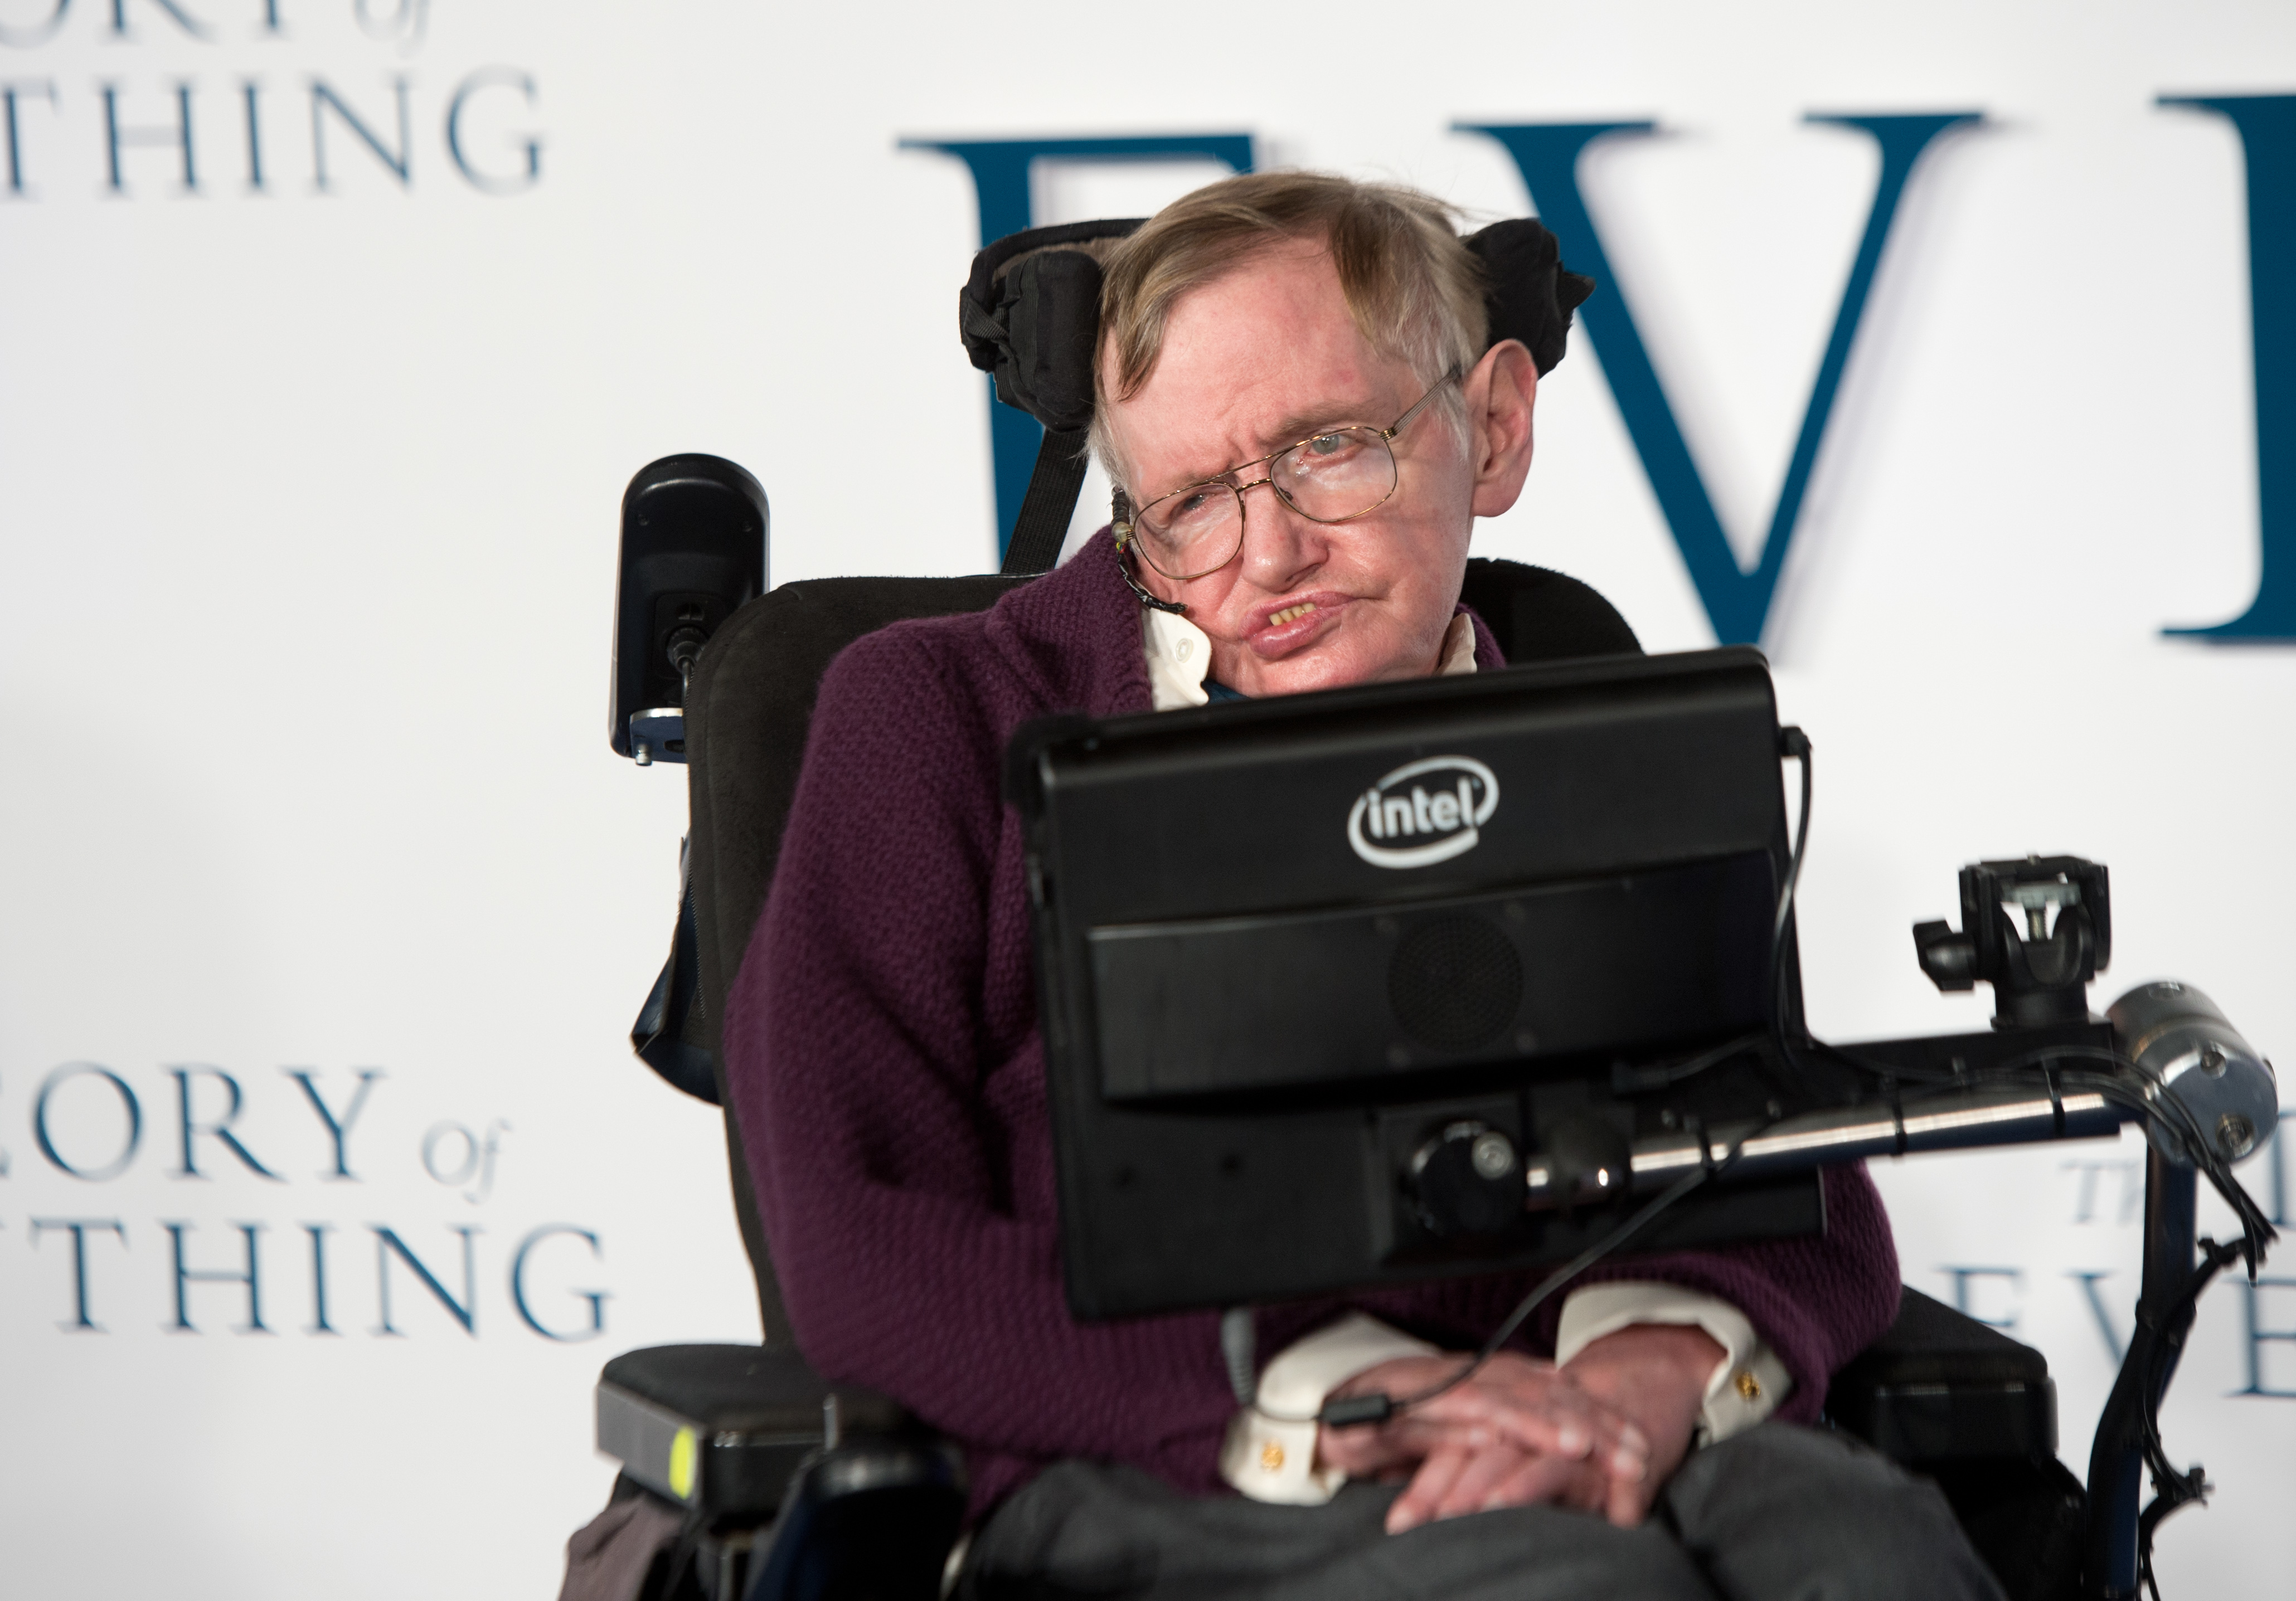 Stephen Hawking has passed away, and the world is truly doomed